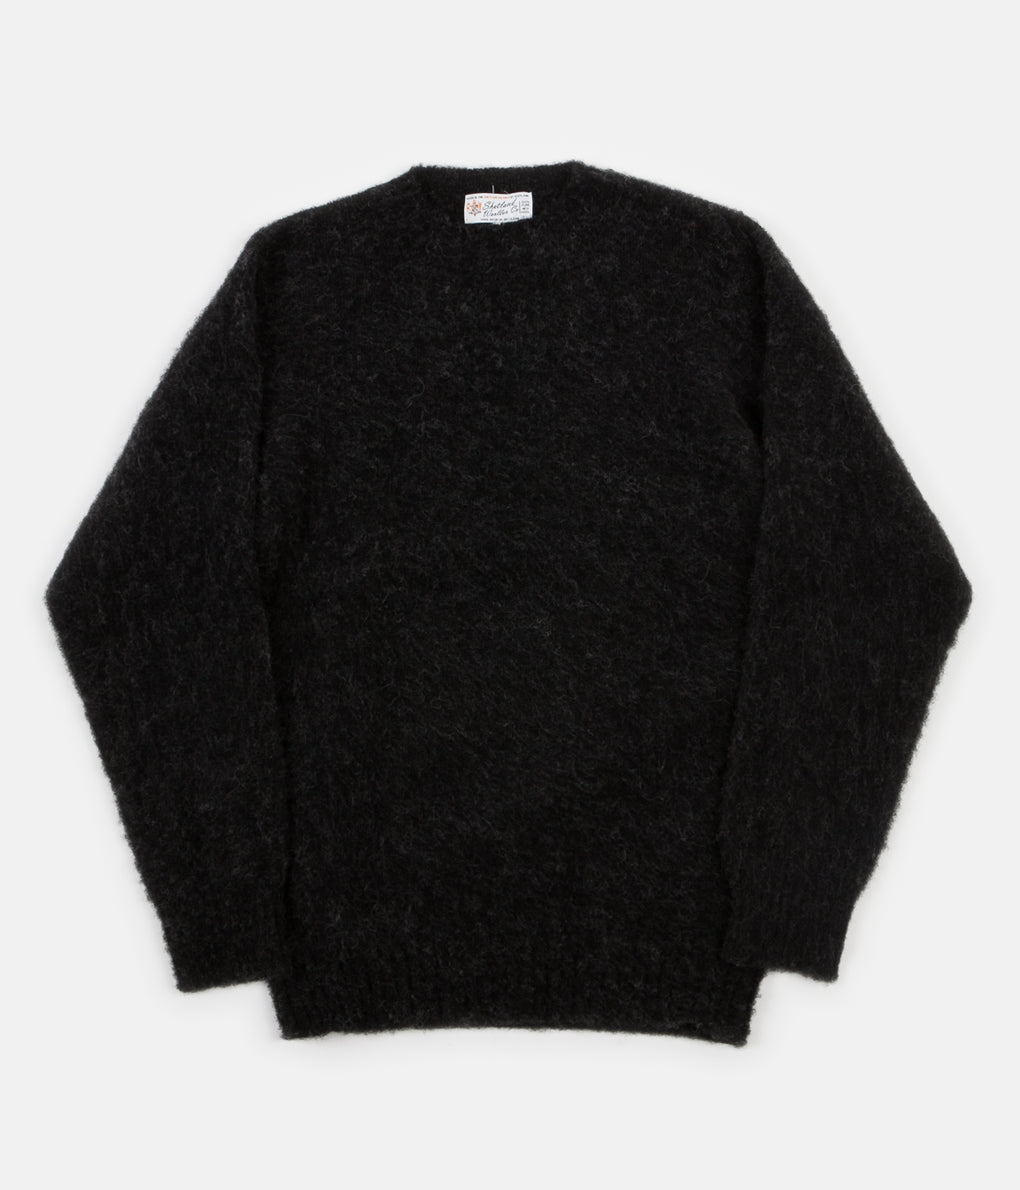 Shetland Woollen Co. Heavy Brushed Shaggy Crewneck - Black